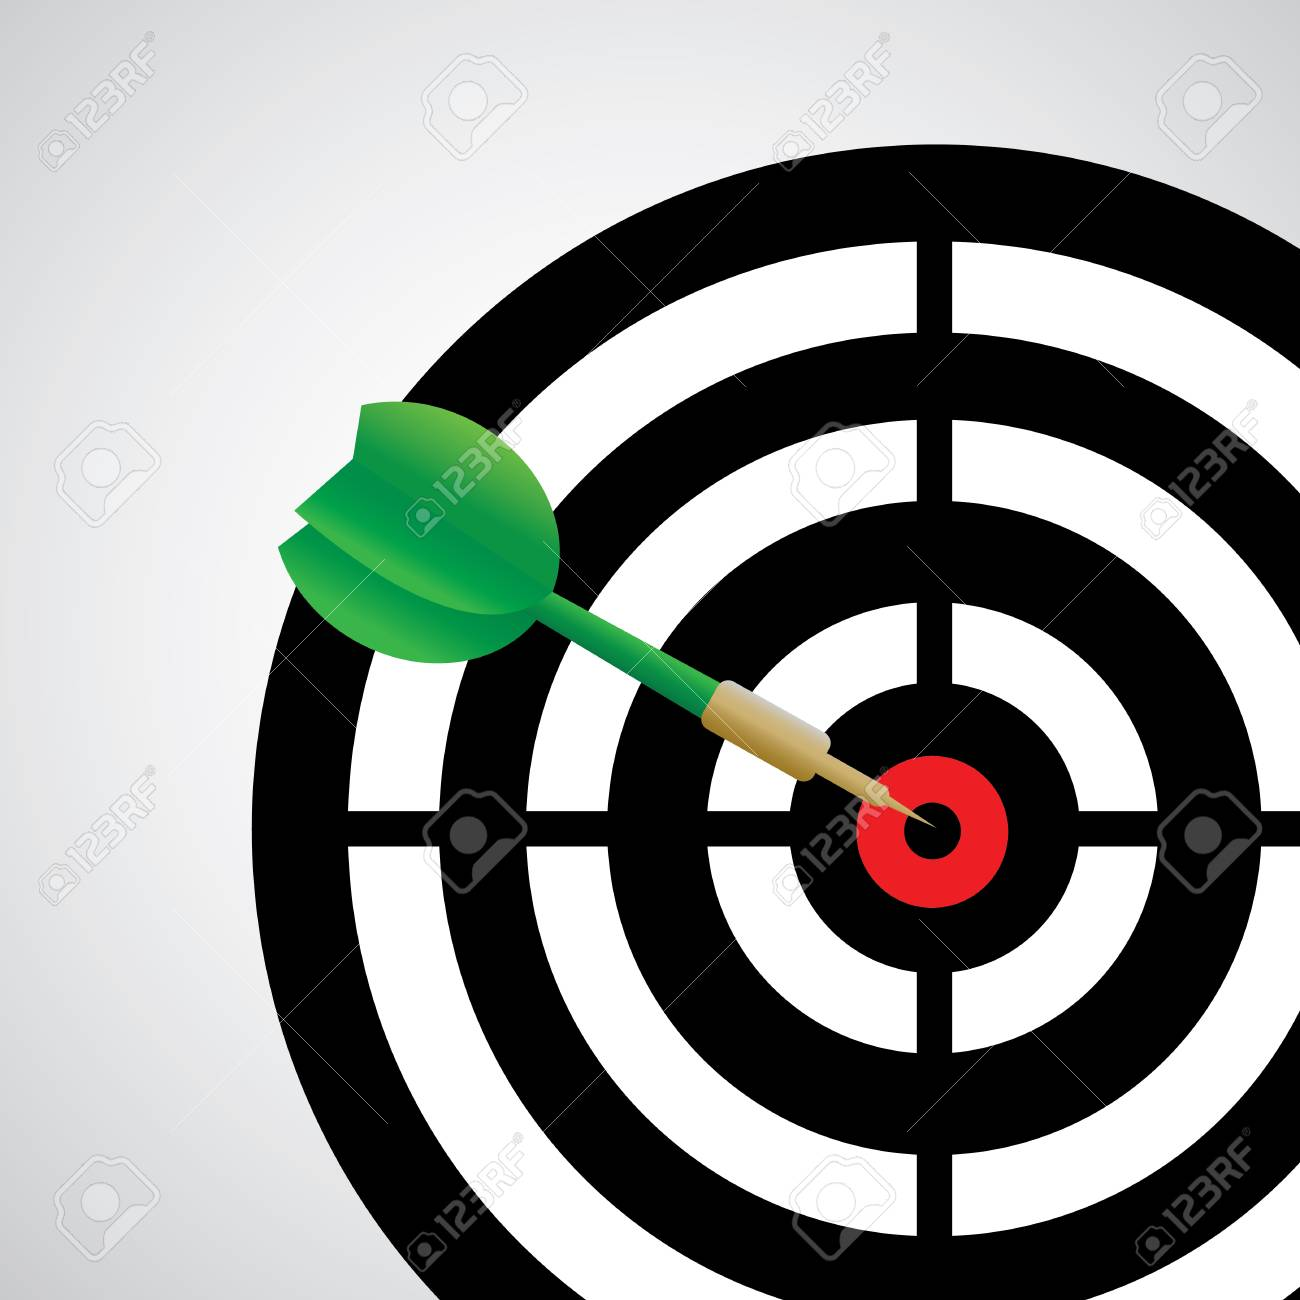 Darts Game With A Dart In The Target Center Royalty Free Cliparts